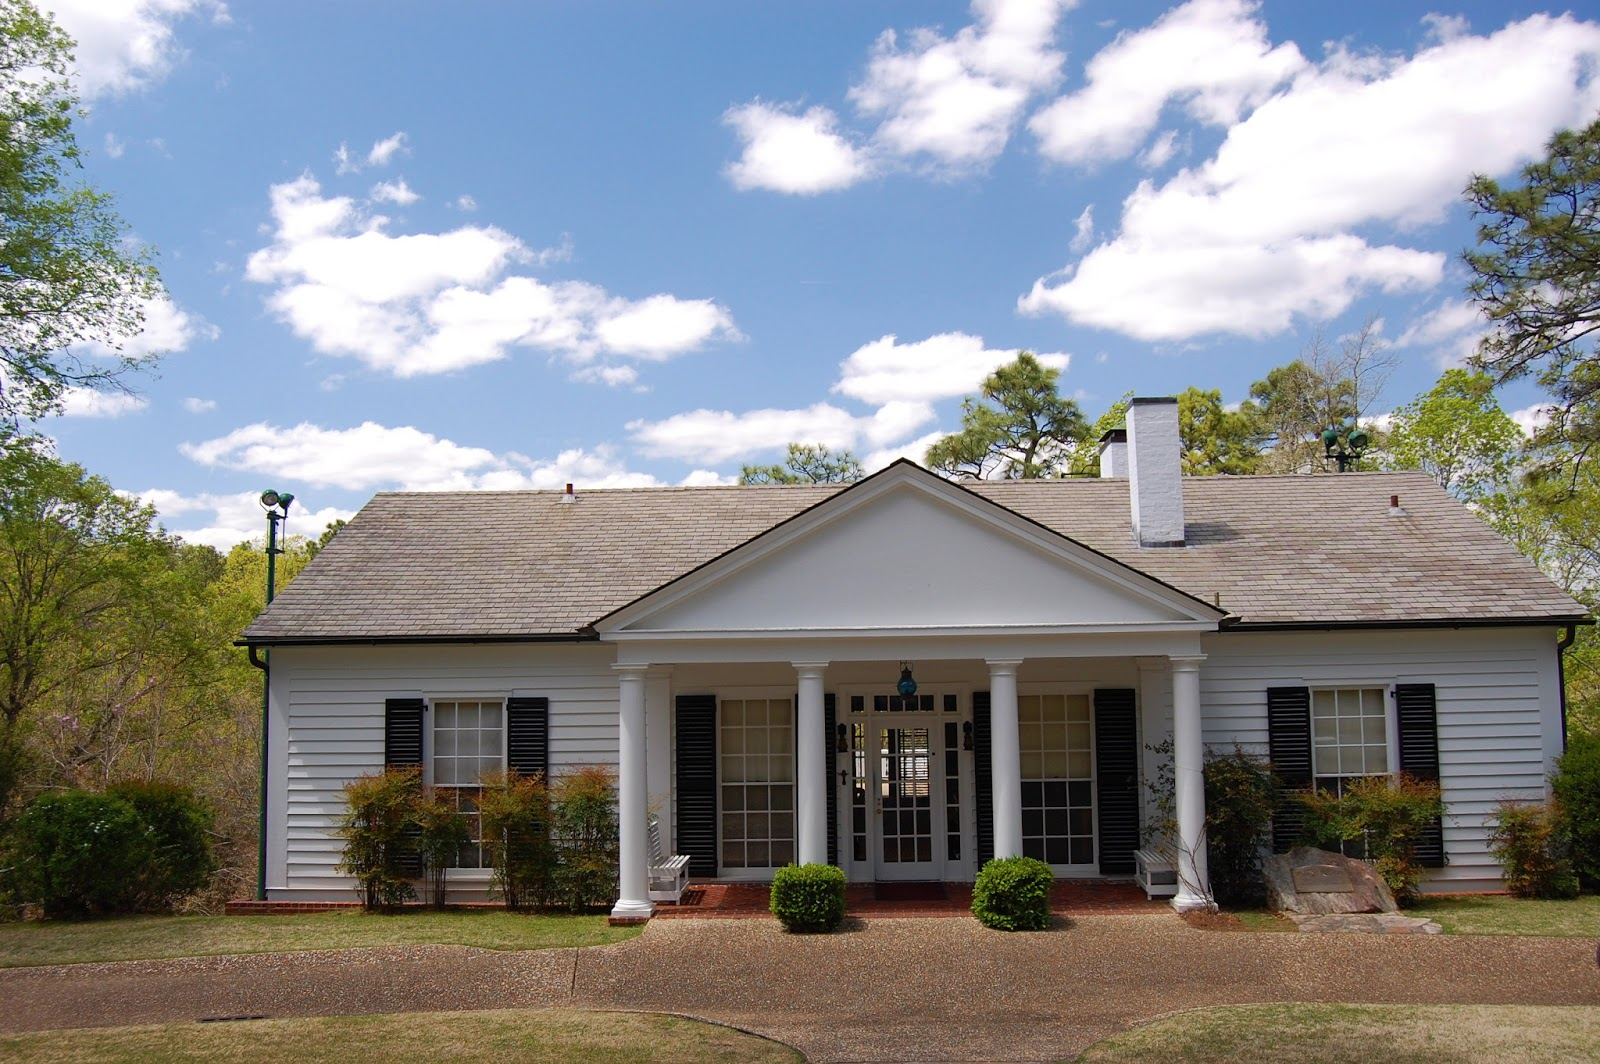 recollections of a vagabonde the little white house in georgia the little white house is a six room one story cottage quite humble for a president of the united states it was opened to the public in 1948 and has been